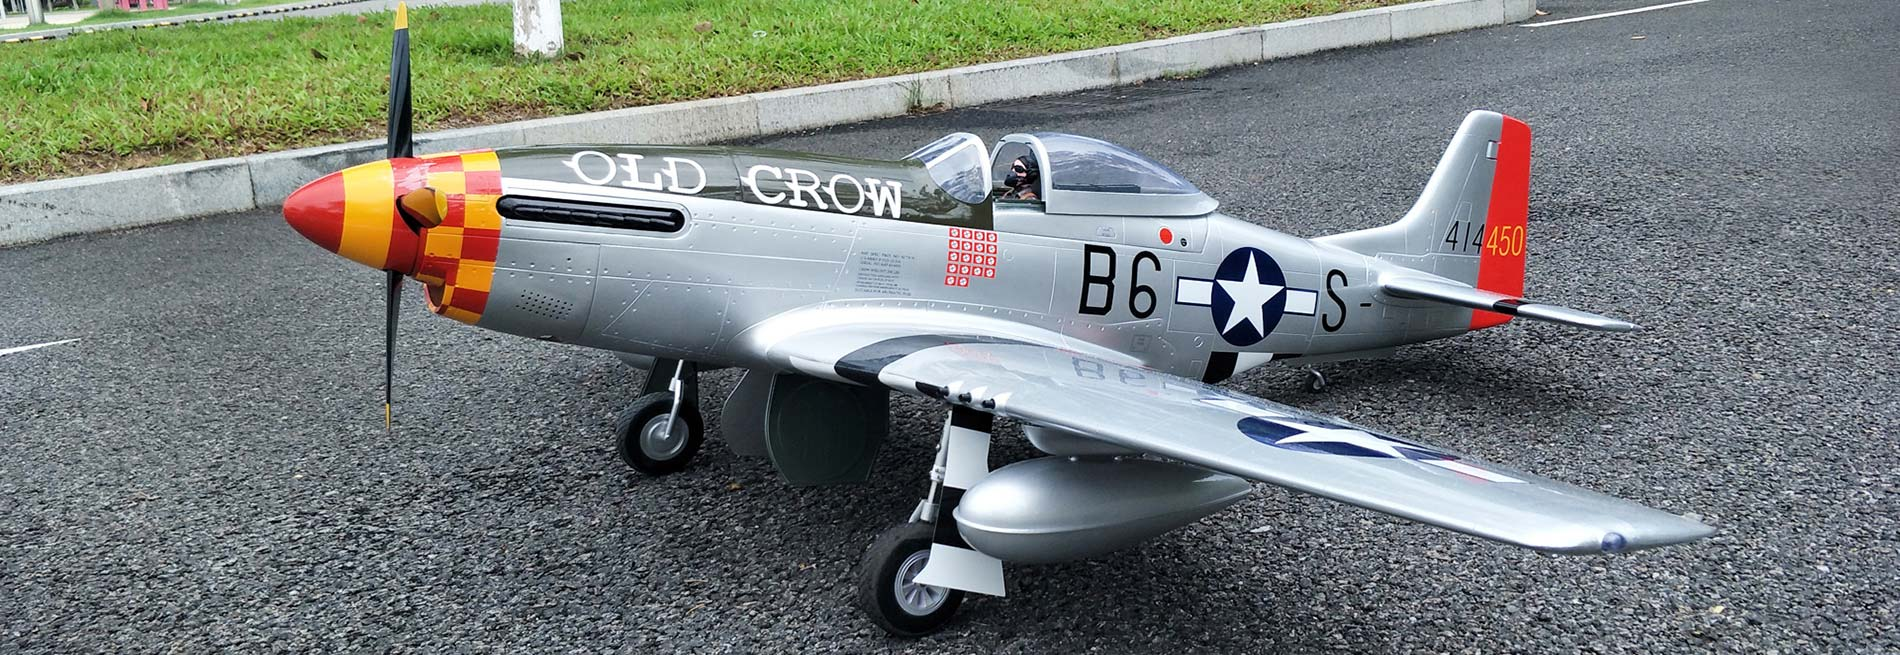 P-51 OLD CROW Scaling